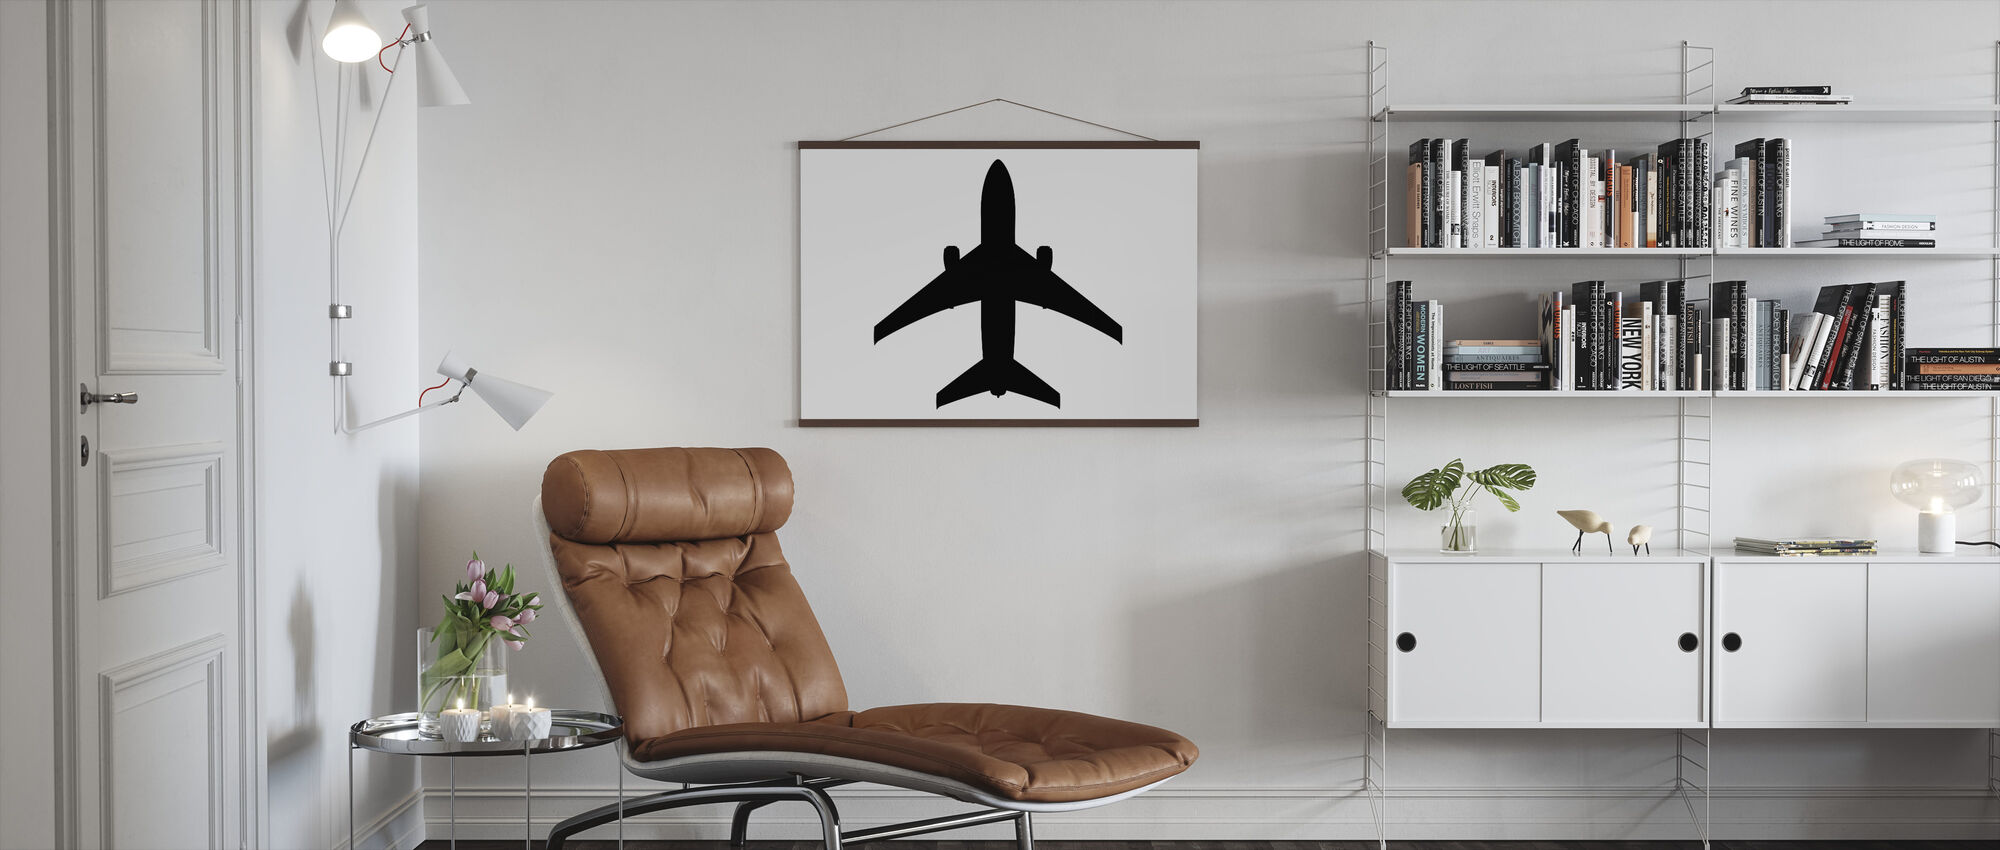 Graphic Plane - Poster - Living Room